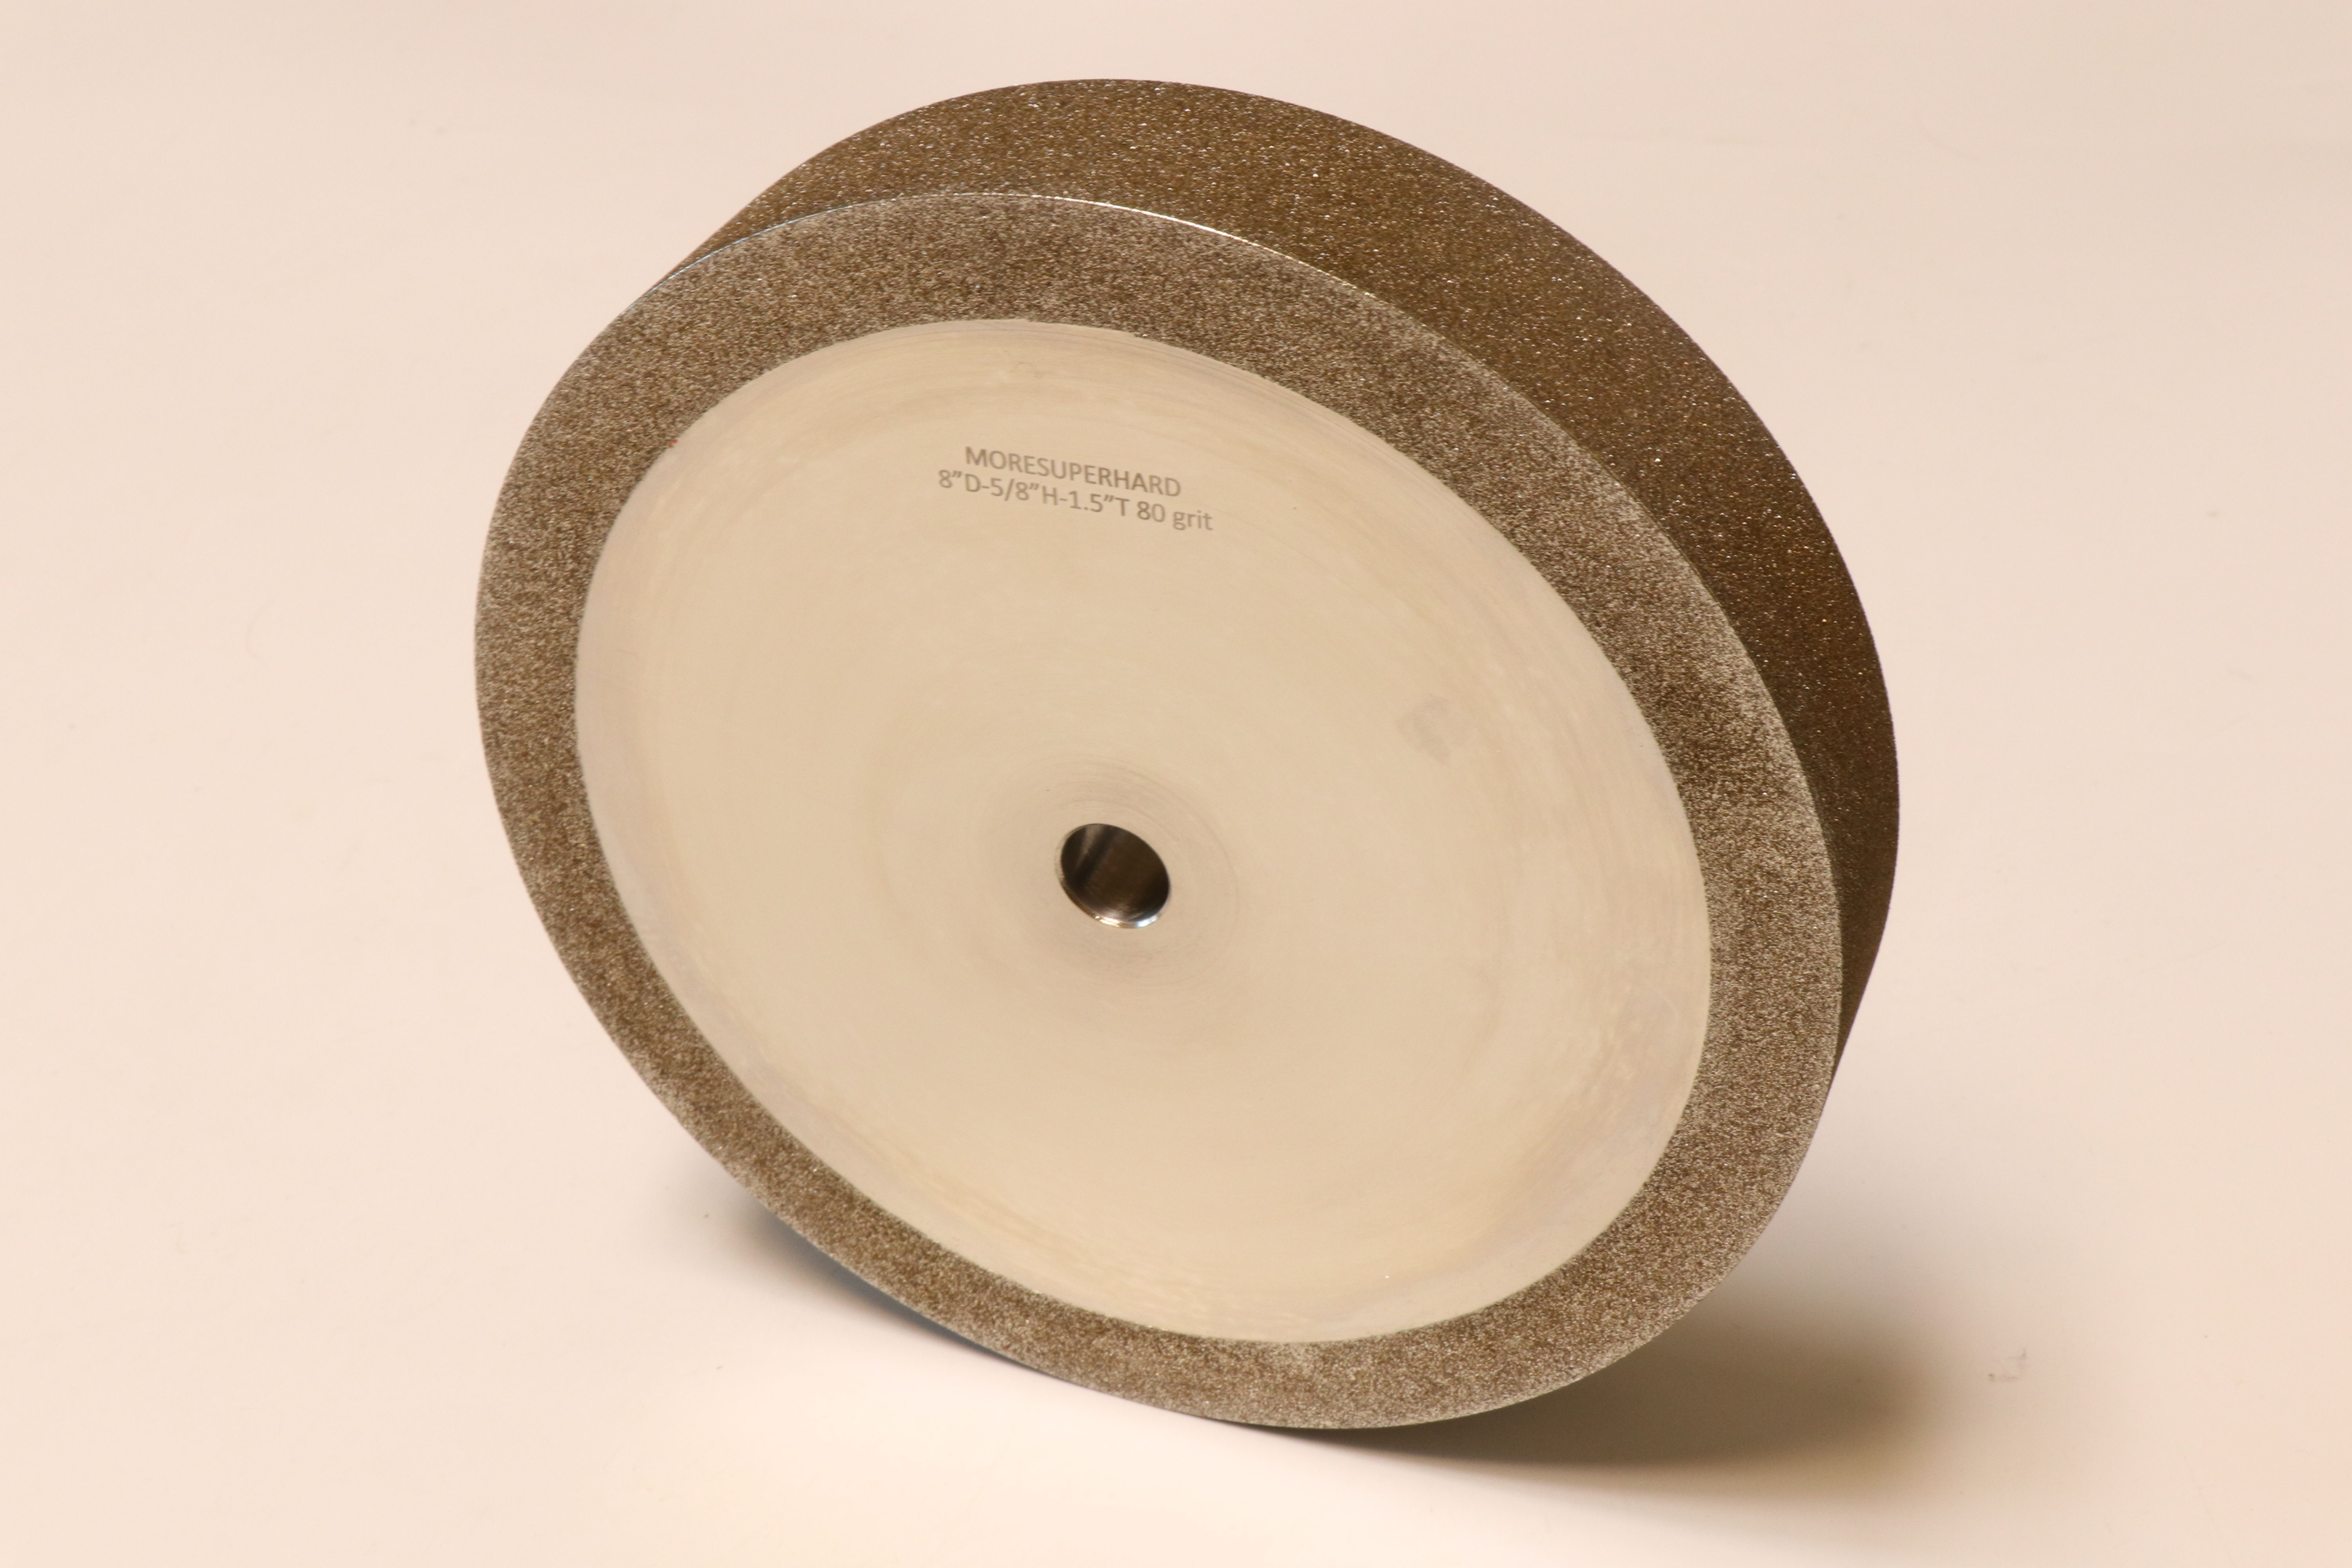 Cubic Boron Nitride Grinding Wheels Woodturning Tools Bench Grinder High Speed Steel